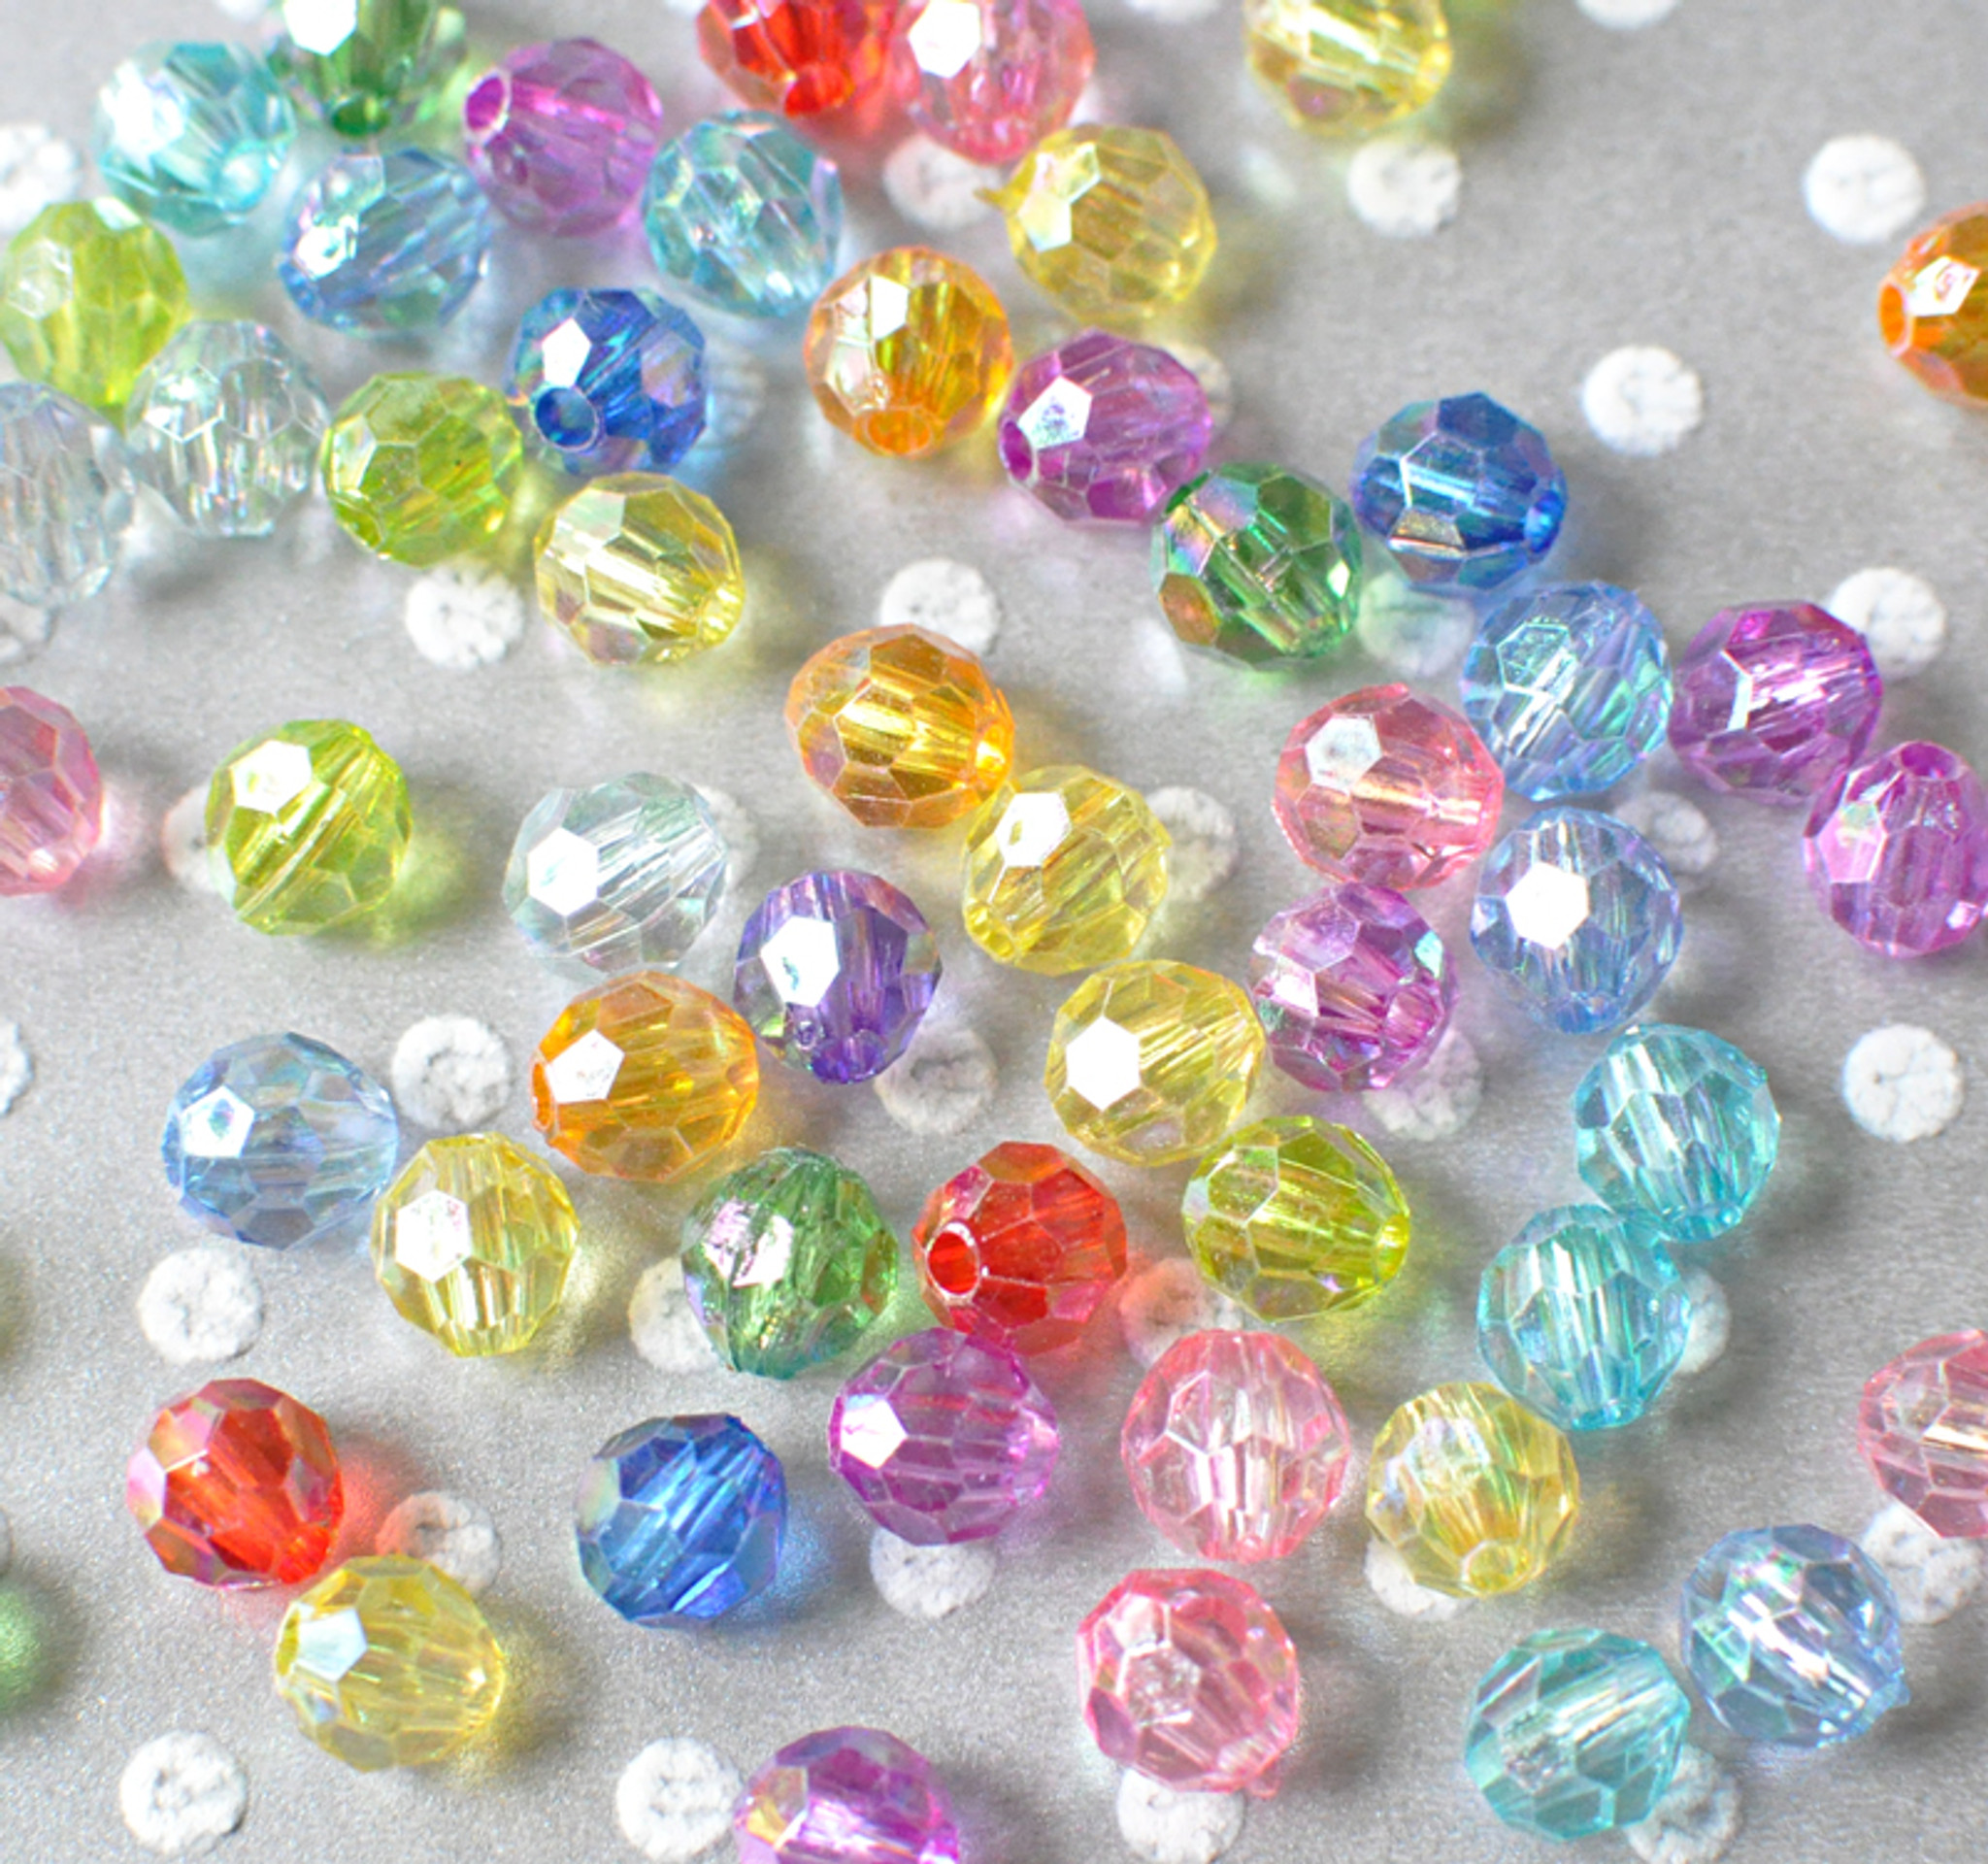 8mm Faceted AB multi-color acrylic beads